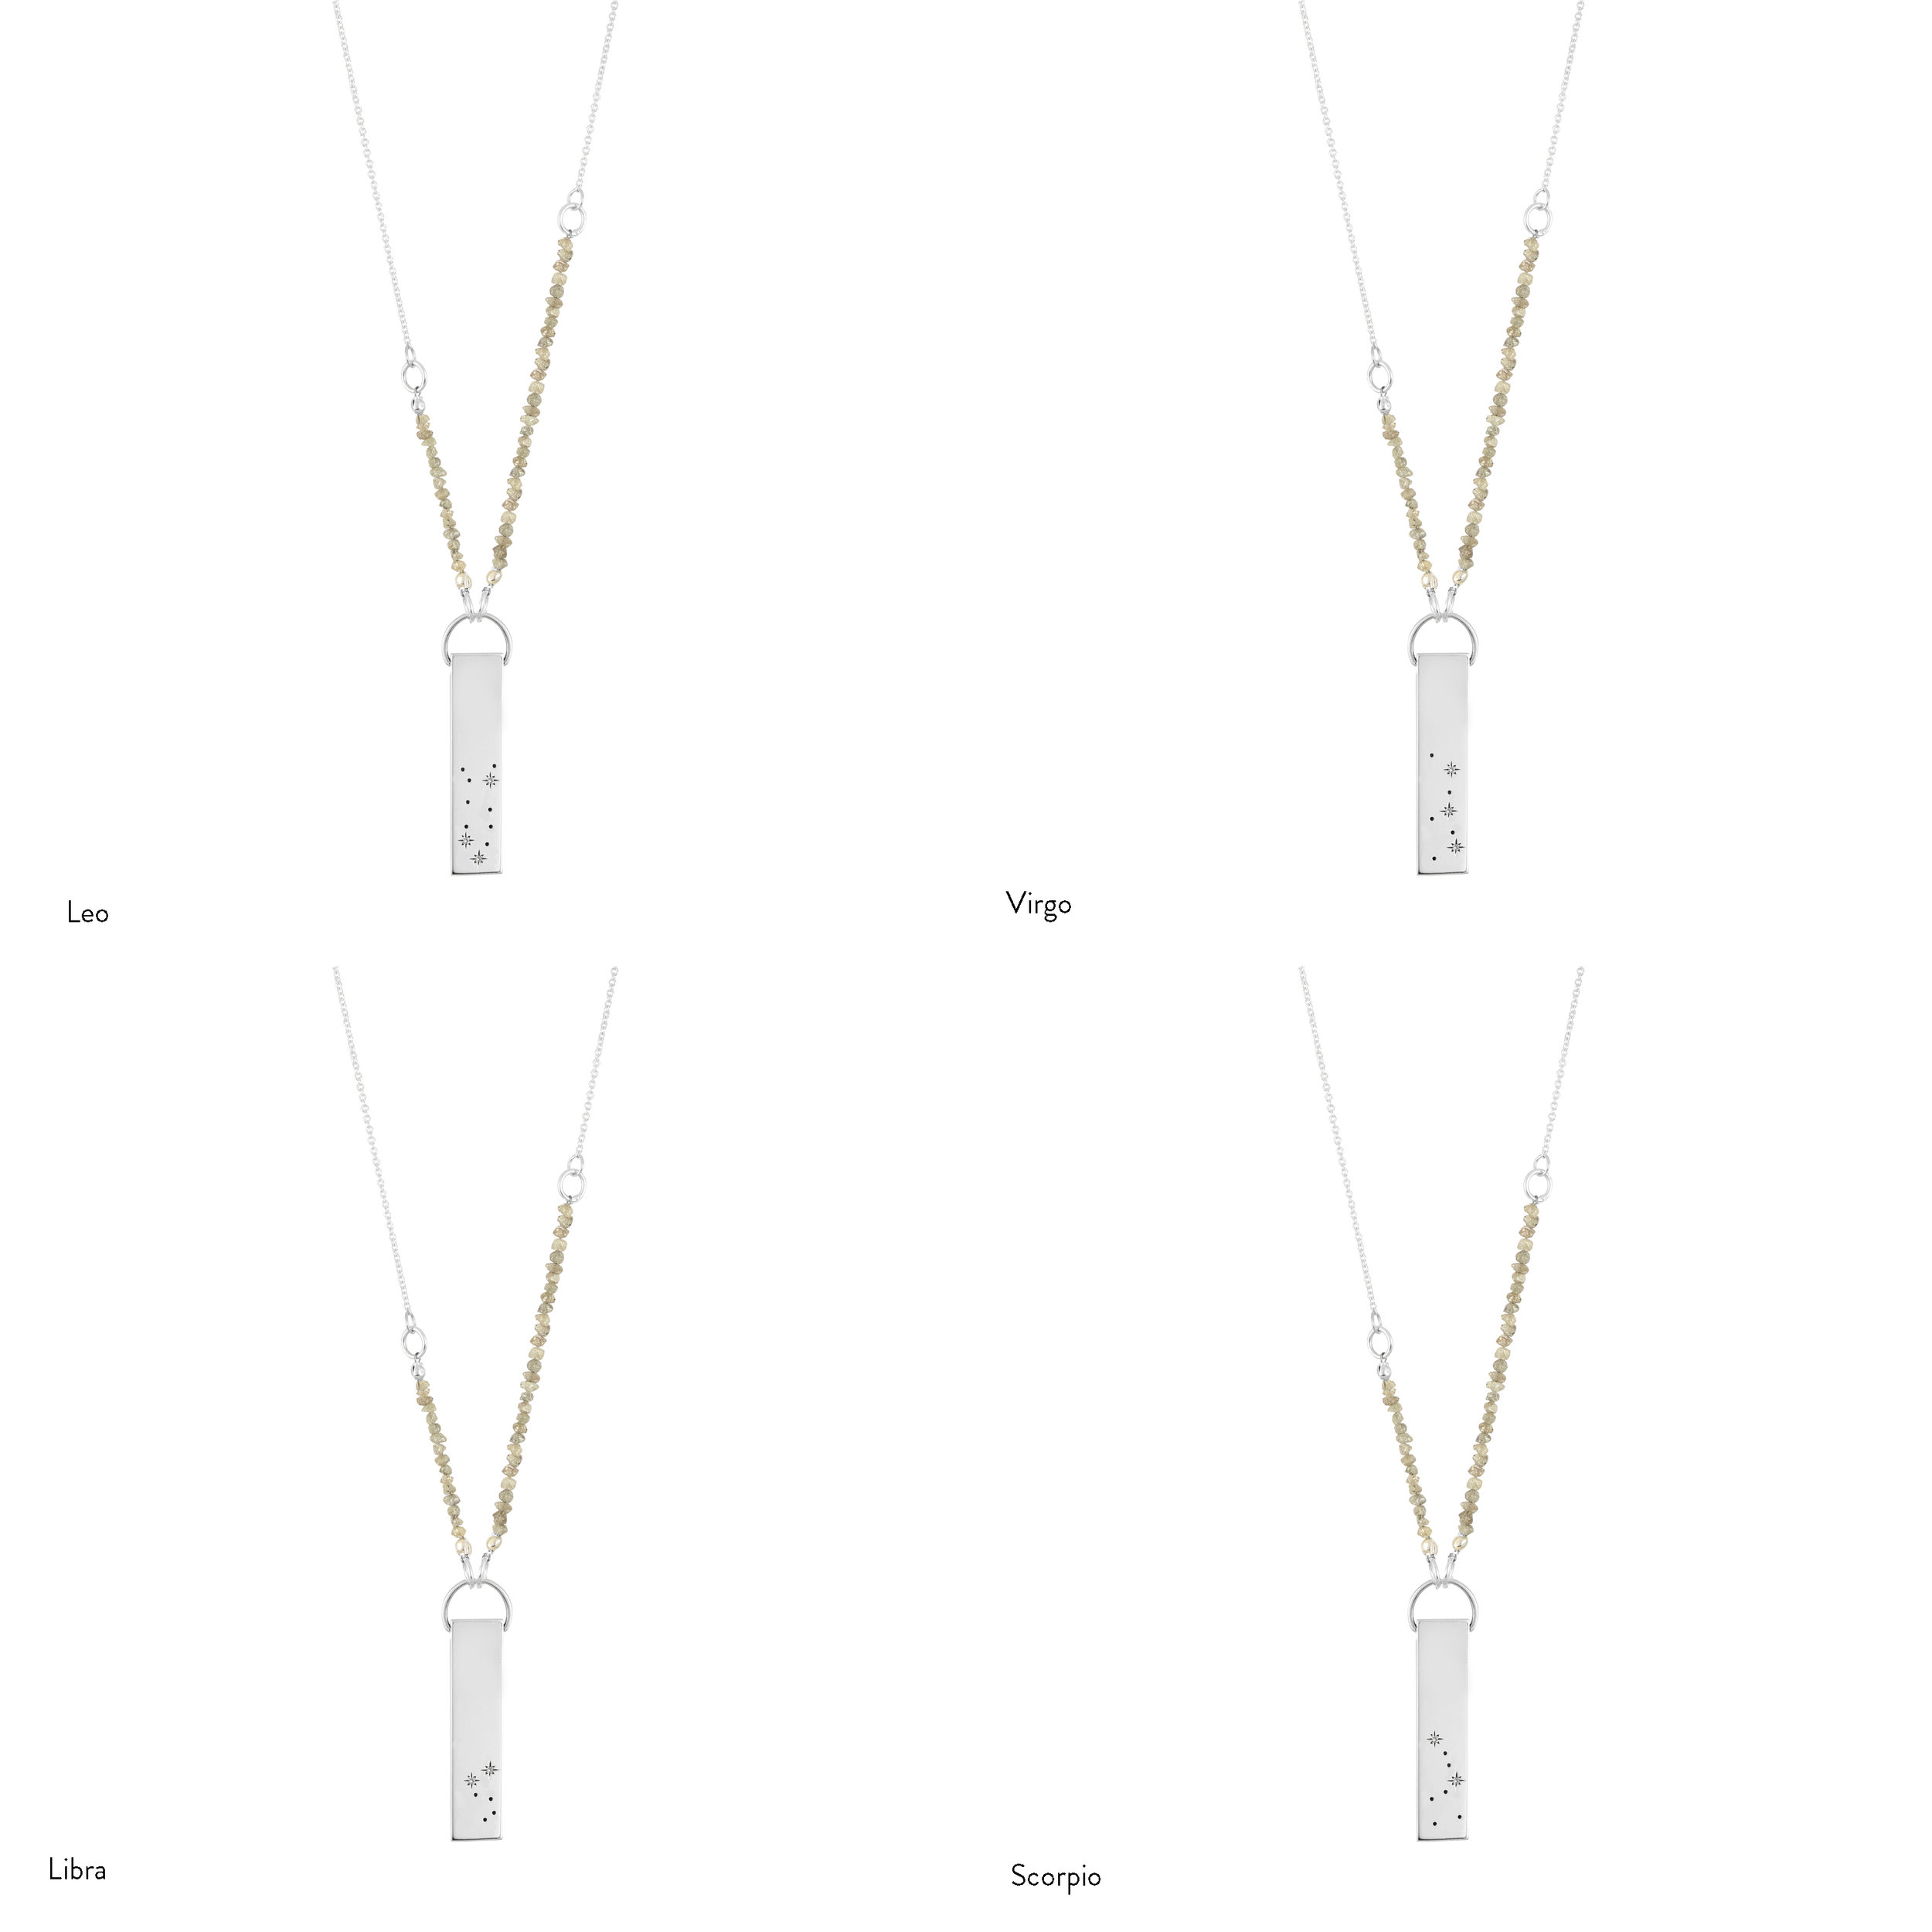 sale talon assembly gold garmentory delicate necklaces necklace virgo shop